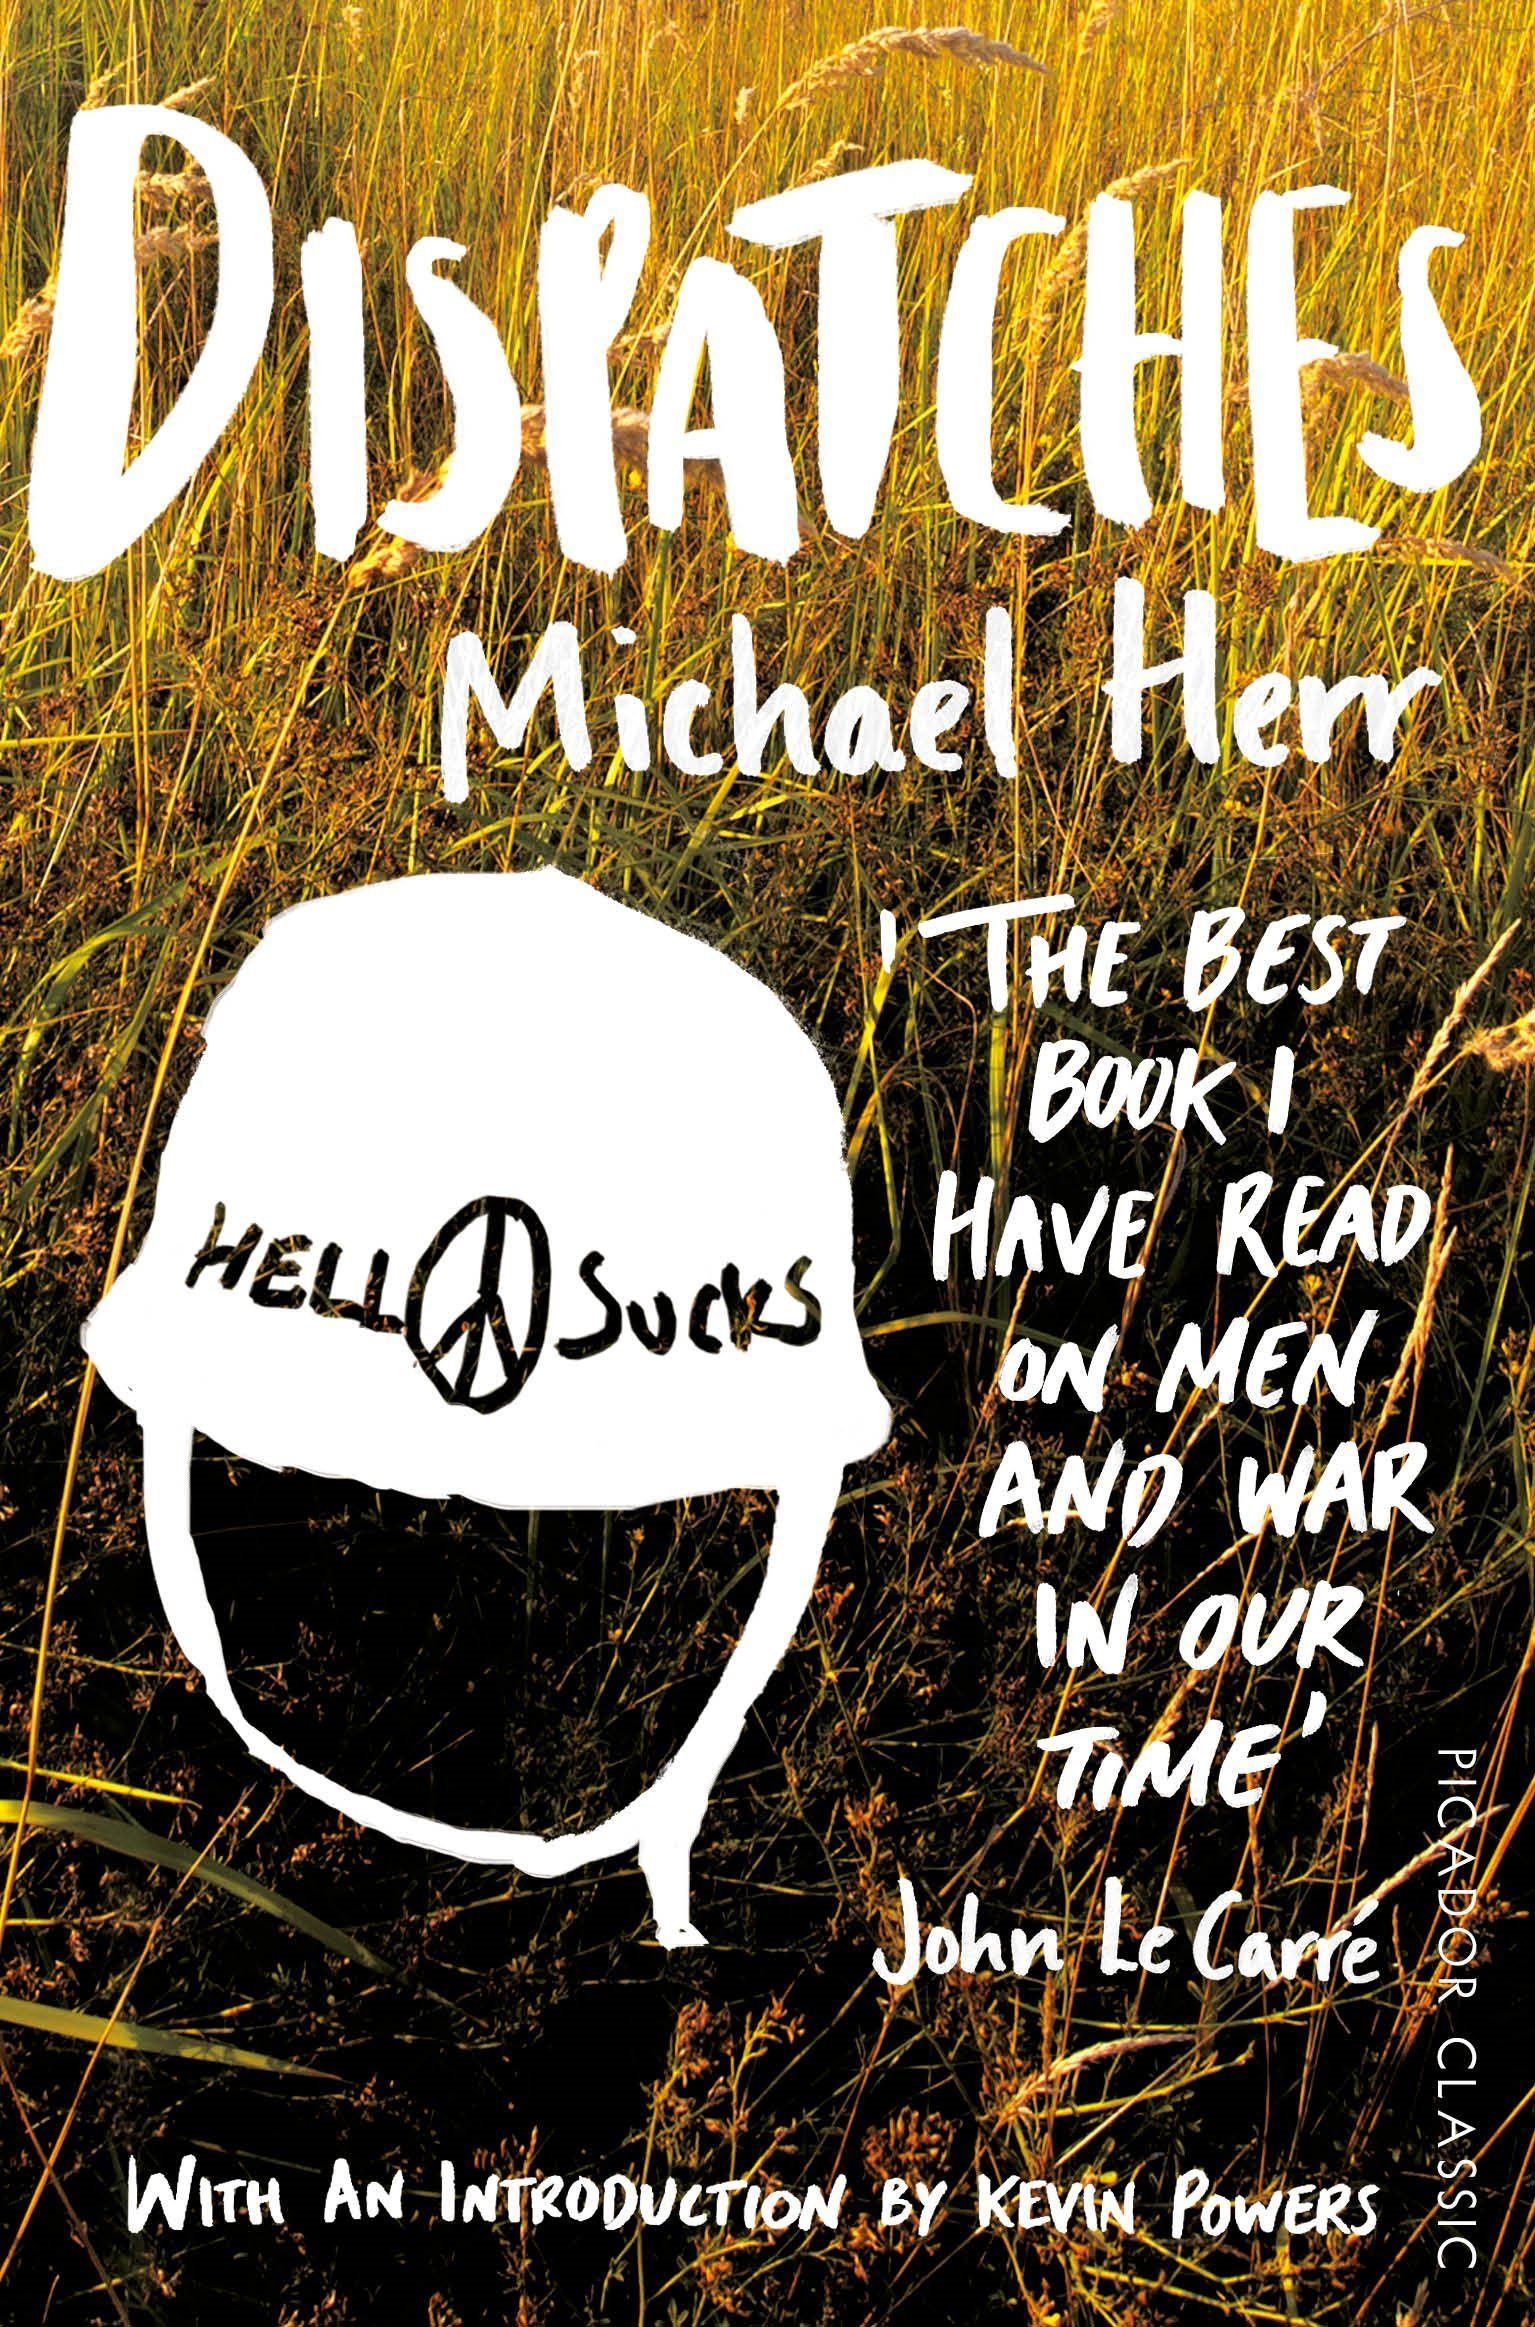 9) Dispatches - Michael Herr has many accolades in his career, some of which include co-writing the script for Kubrick's Full Metal Jacket (1987) and narrating part of Coppola's Apocalypse Now (1979). However, Dispatches is by far his most important work. A collection of stories that detail his time as a correspondent for Esquire during the Vietnam War, Dispatches is a distinctive combination of fiction and non-fiction. By occasionally attributing real dialogue to fictional characters and settings, Herr is able to deliver a remarkable account of the lives of American soldiers in Vietnam. Hellish, funny, immersive, and poetic, Dispatches is must-read novel (which it more or less is).